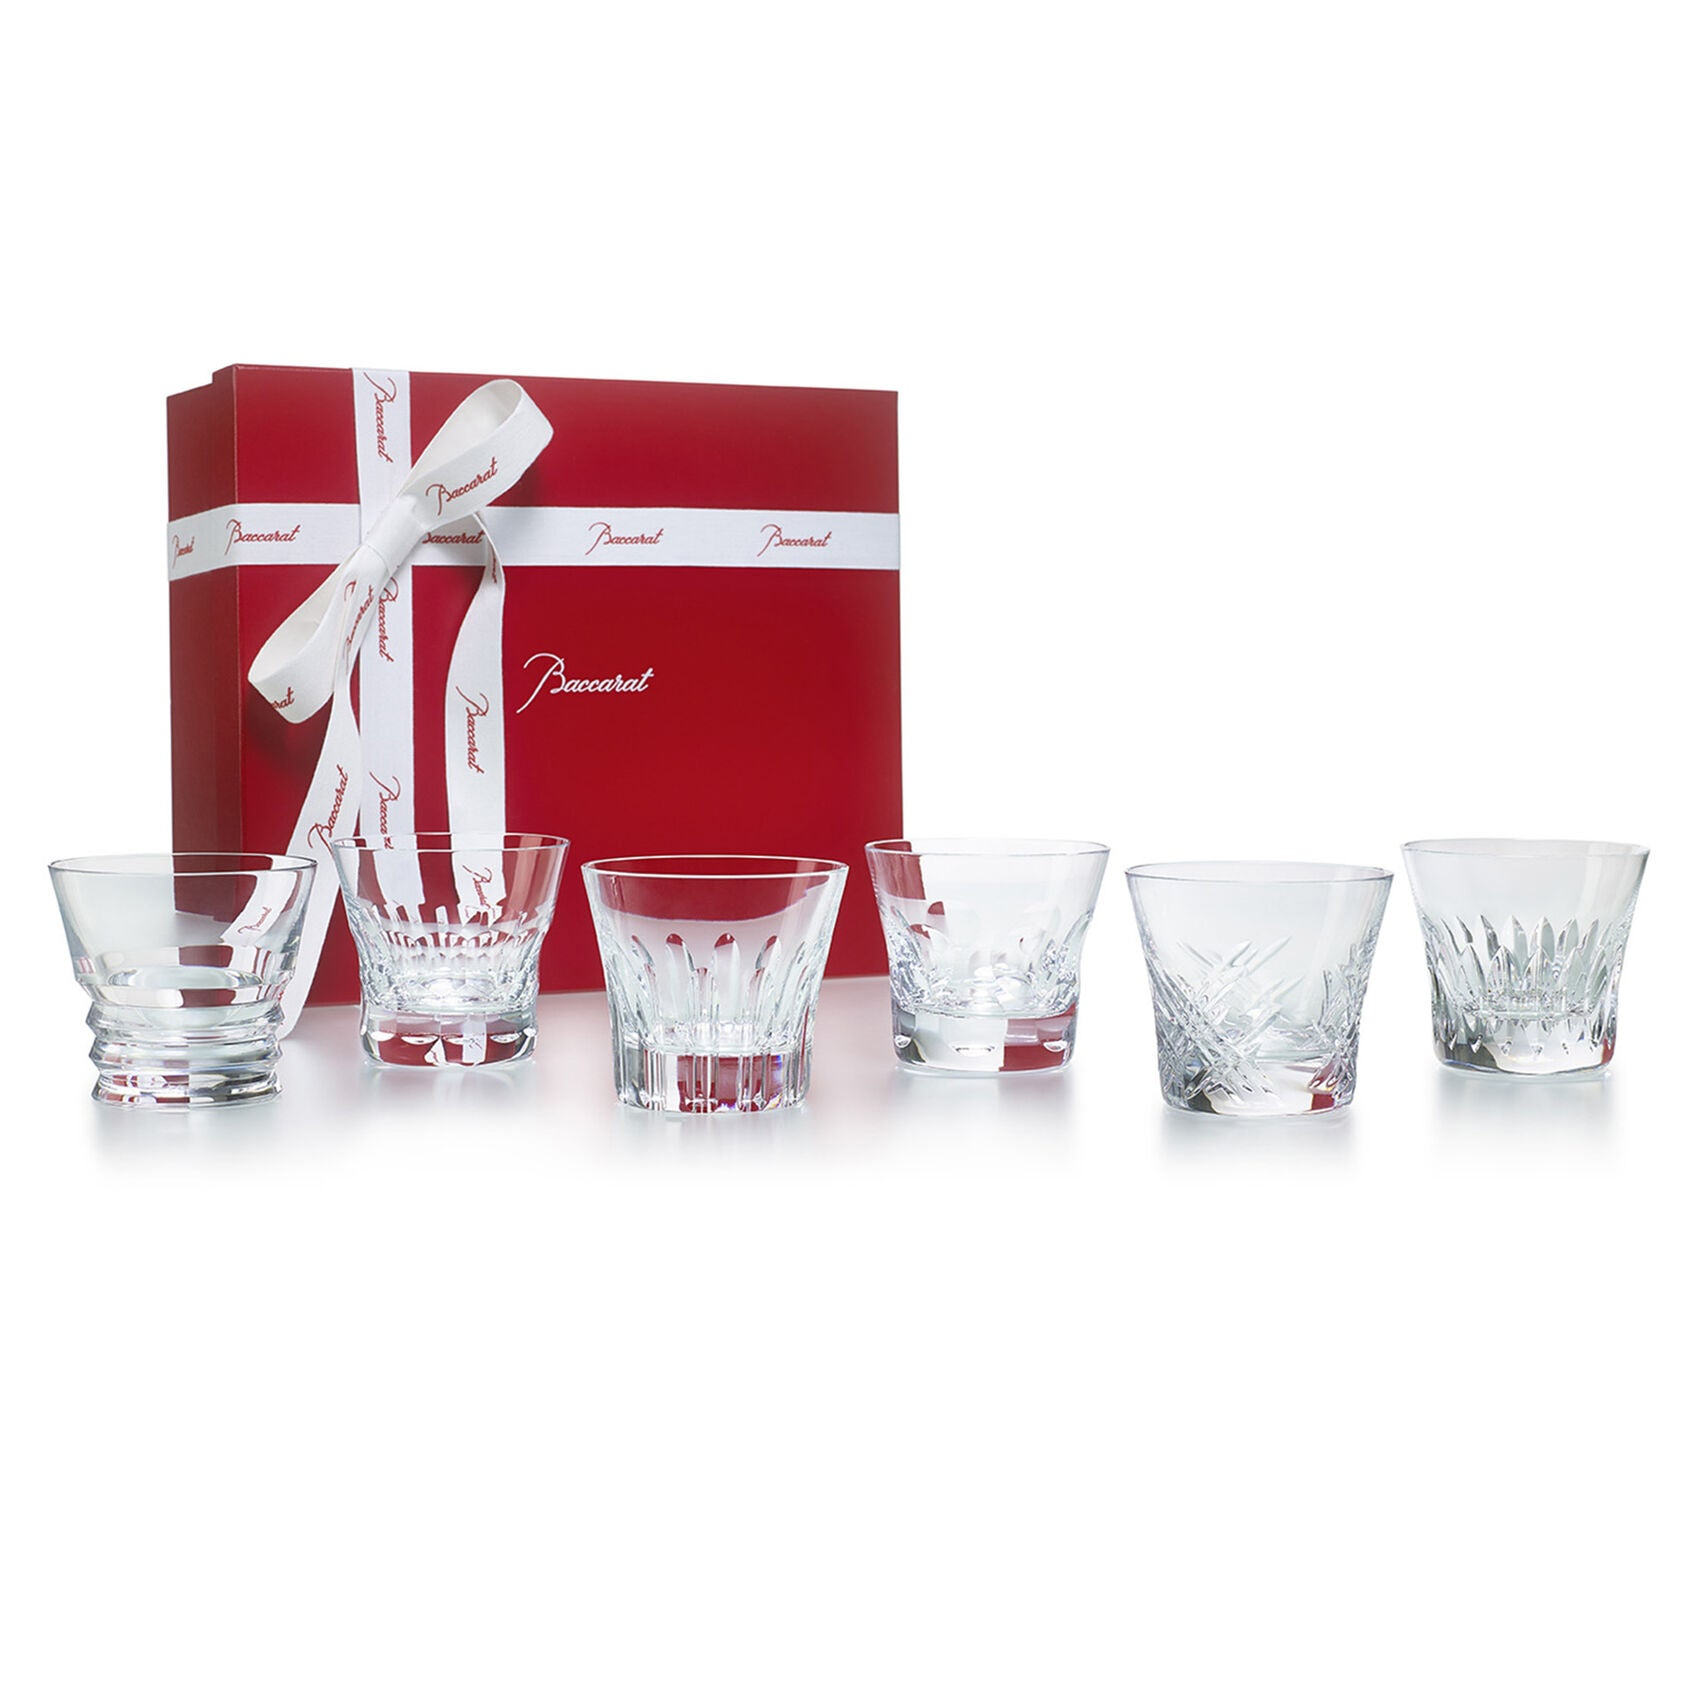 Everyday Baccarat Old Fashioned Tumblers, Set of 6